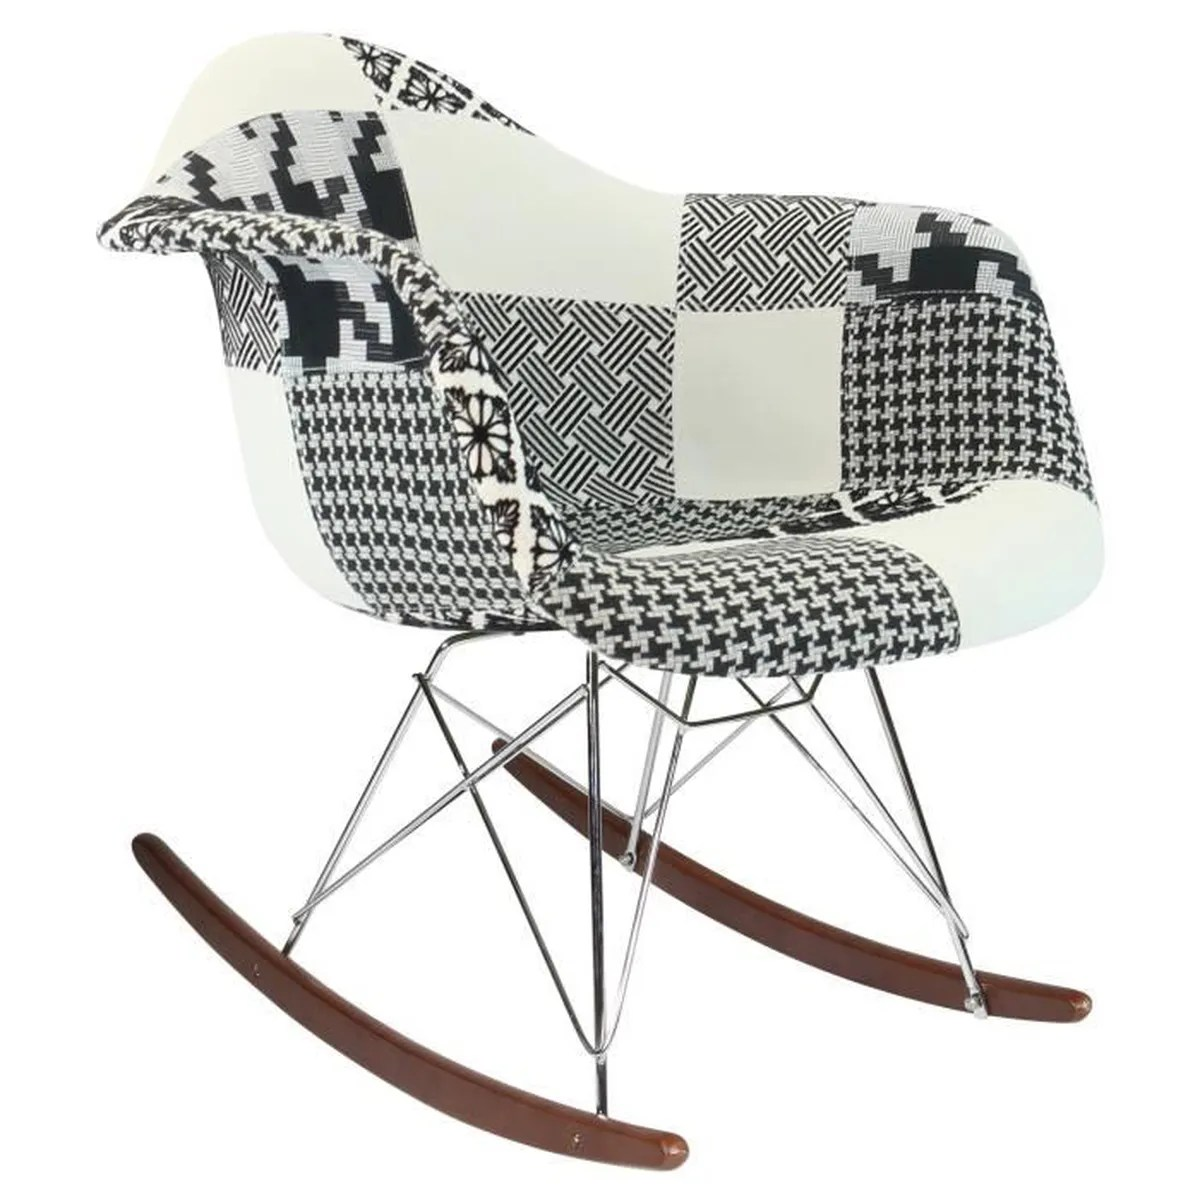 Chaises Privee Chaise Privee Chaise Rar Patchwork Patchwork